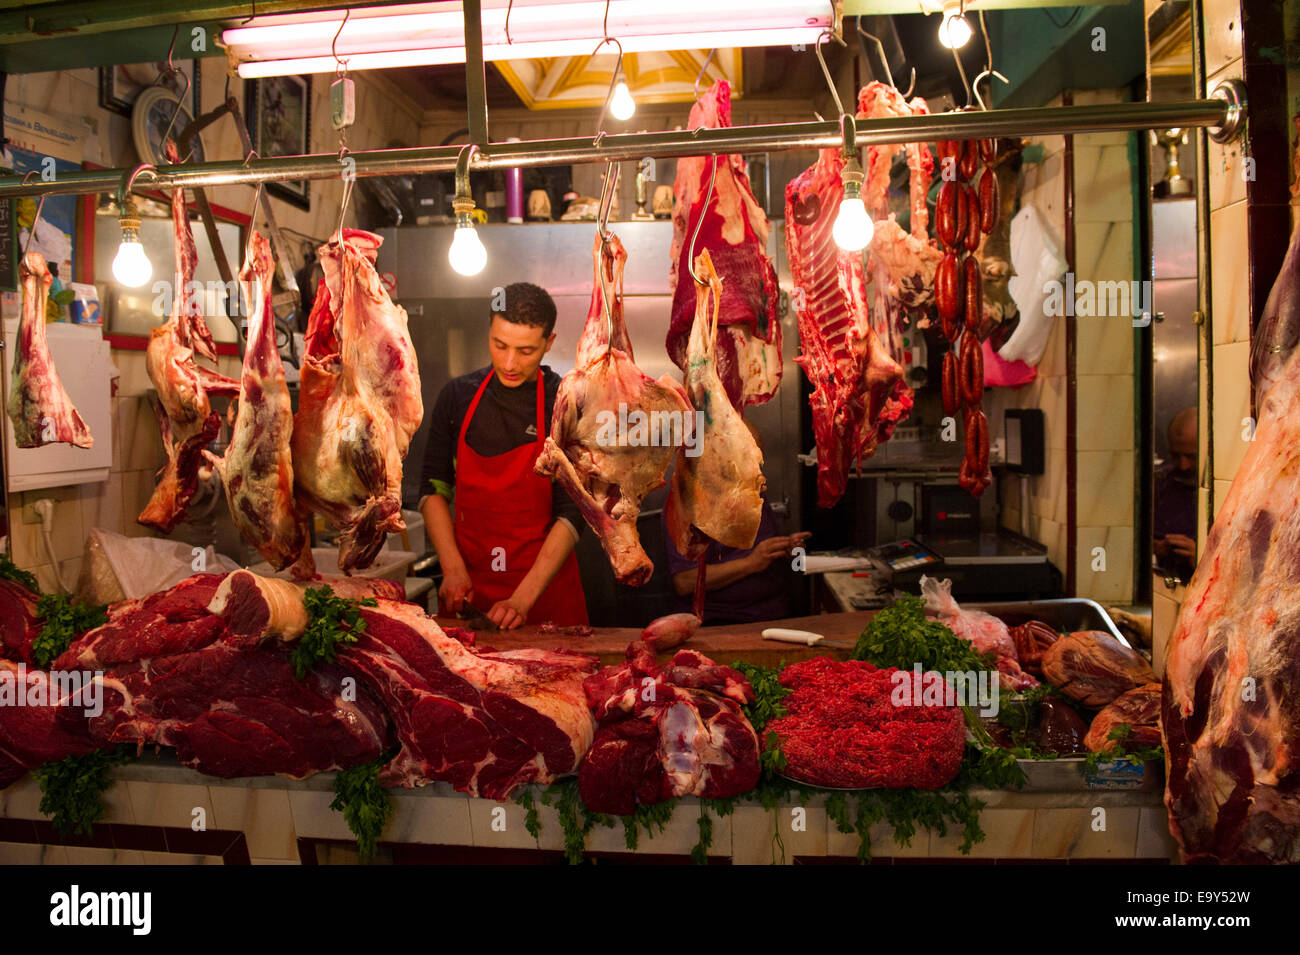 Meat seller butcher Morroco Kasbah - Stock Image